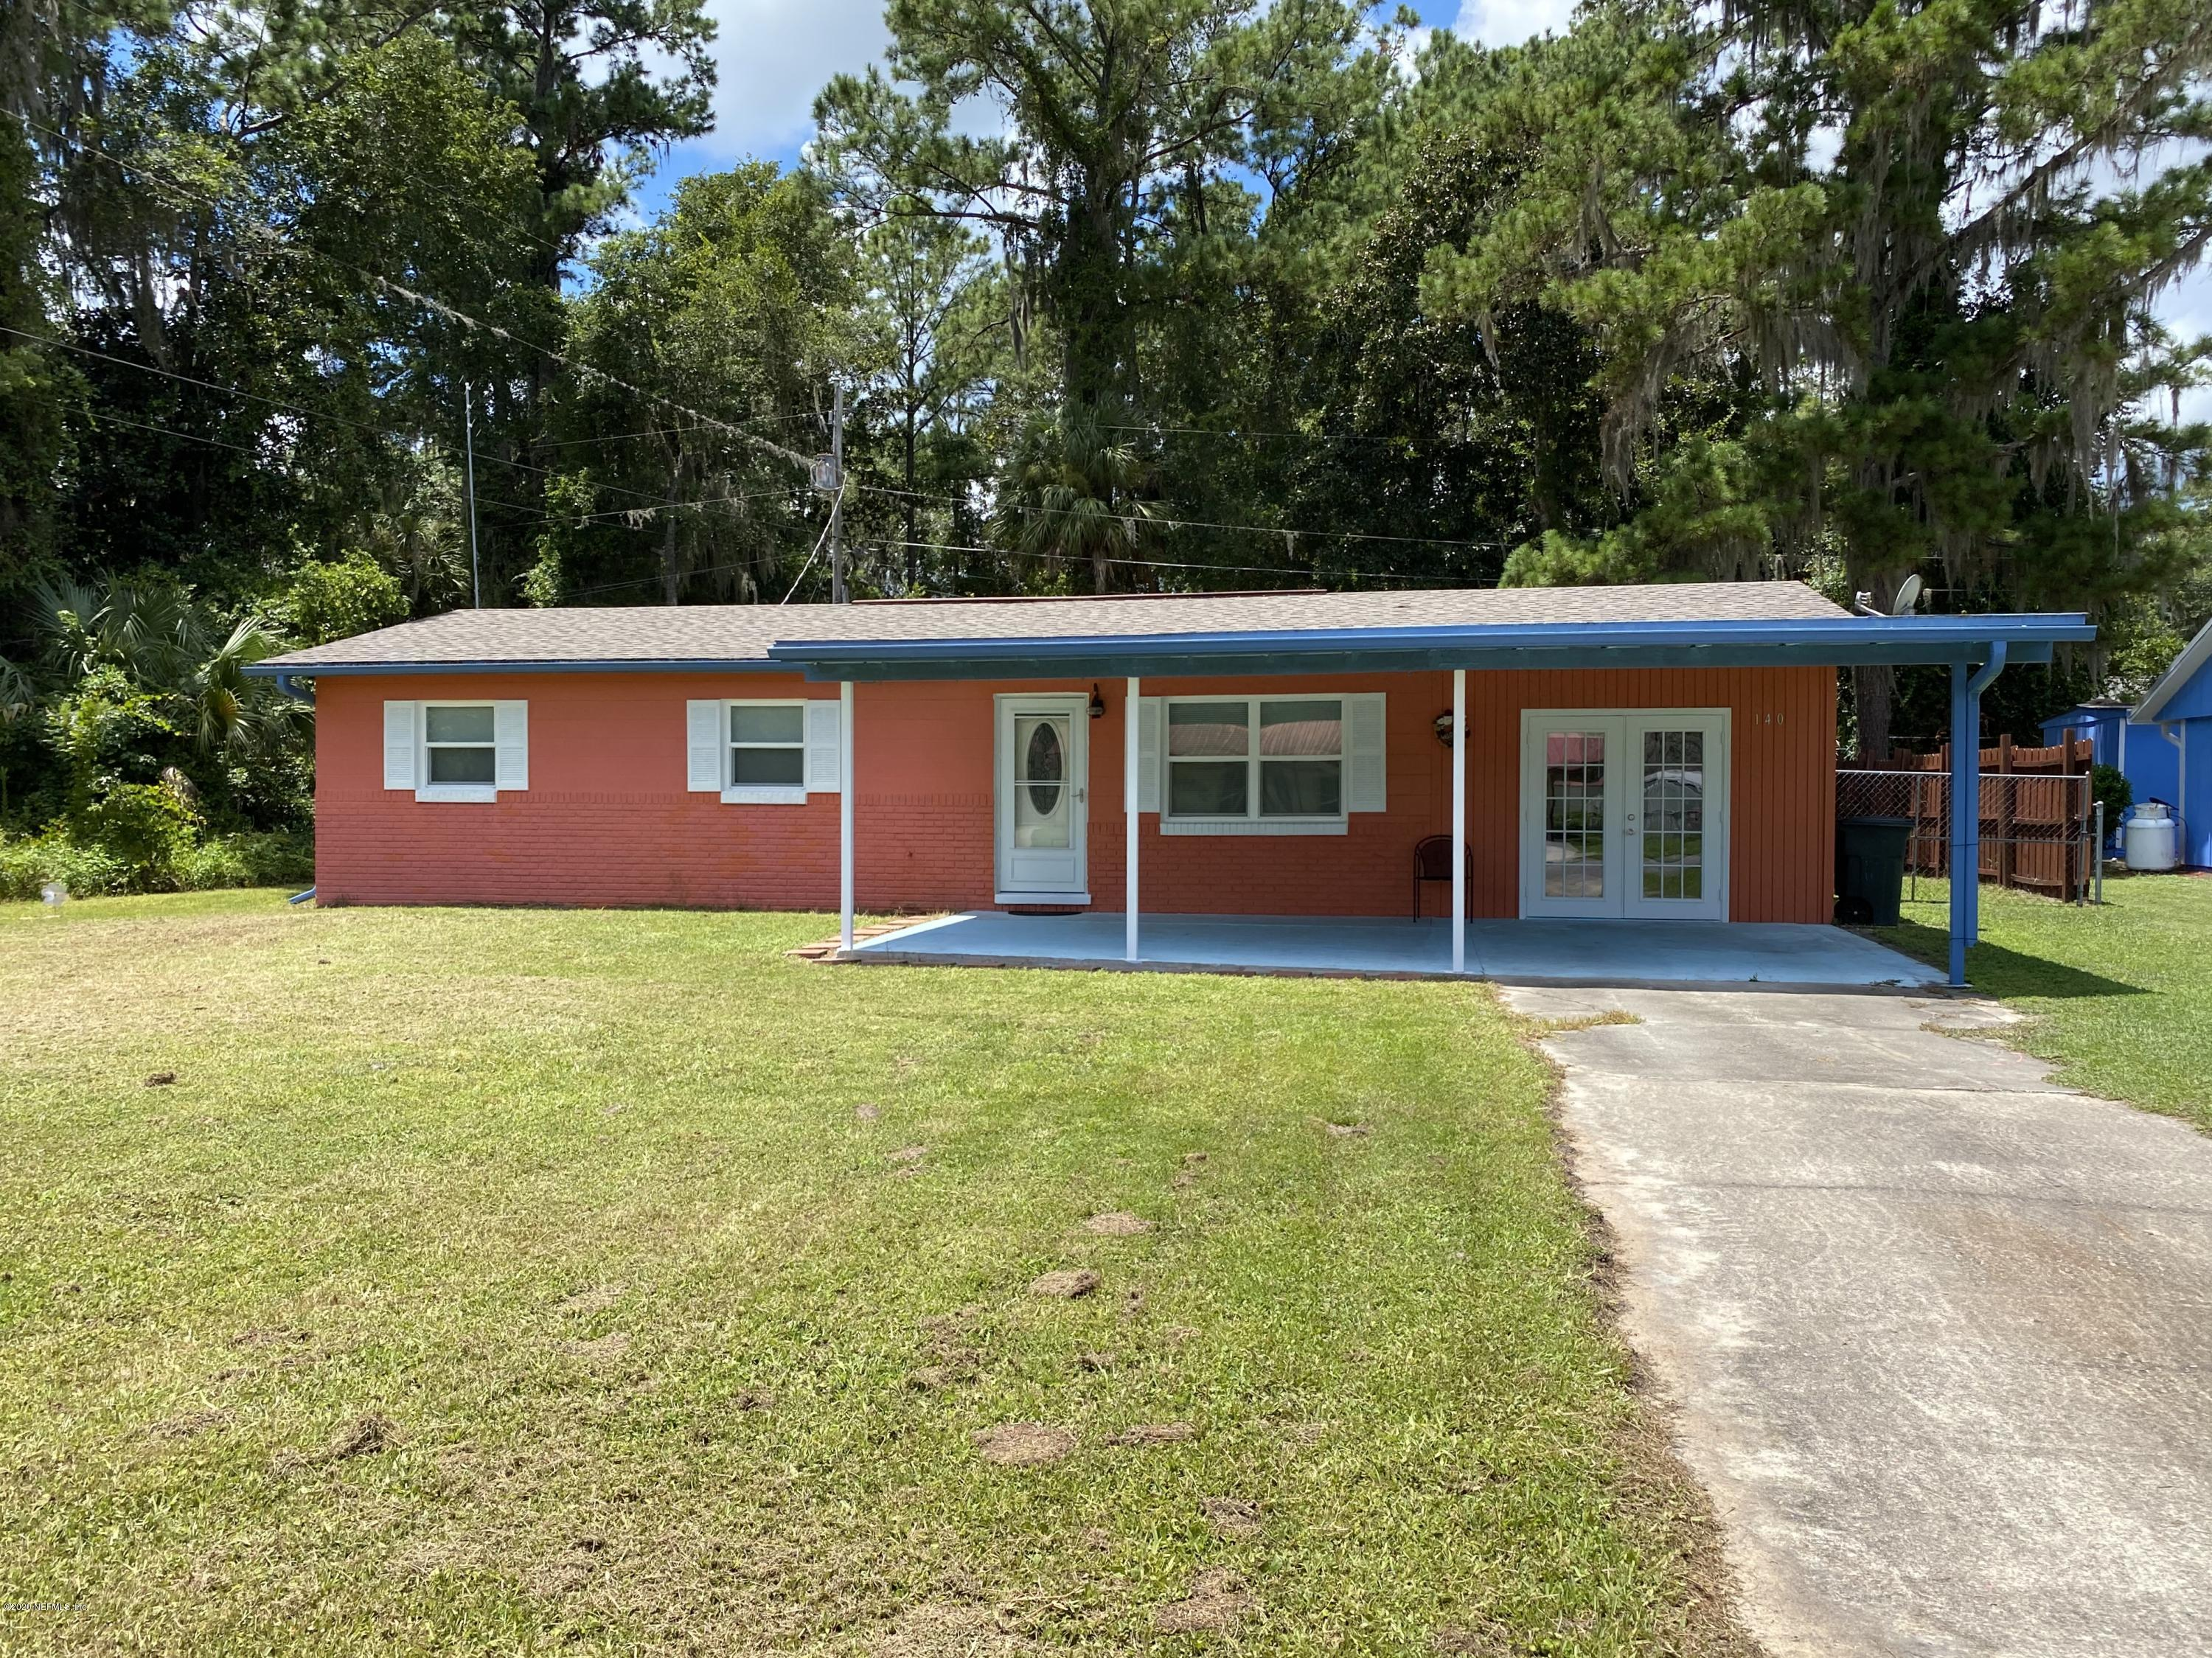 140 PARK, SATSUMA, FLORIDA 32189, 3 Bedrooms Bedrooms, ,1 BathroomBathrooms,Residential,For sale,PARK,1053776